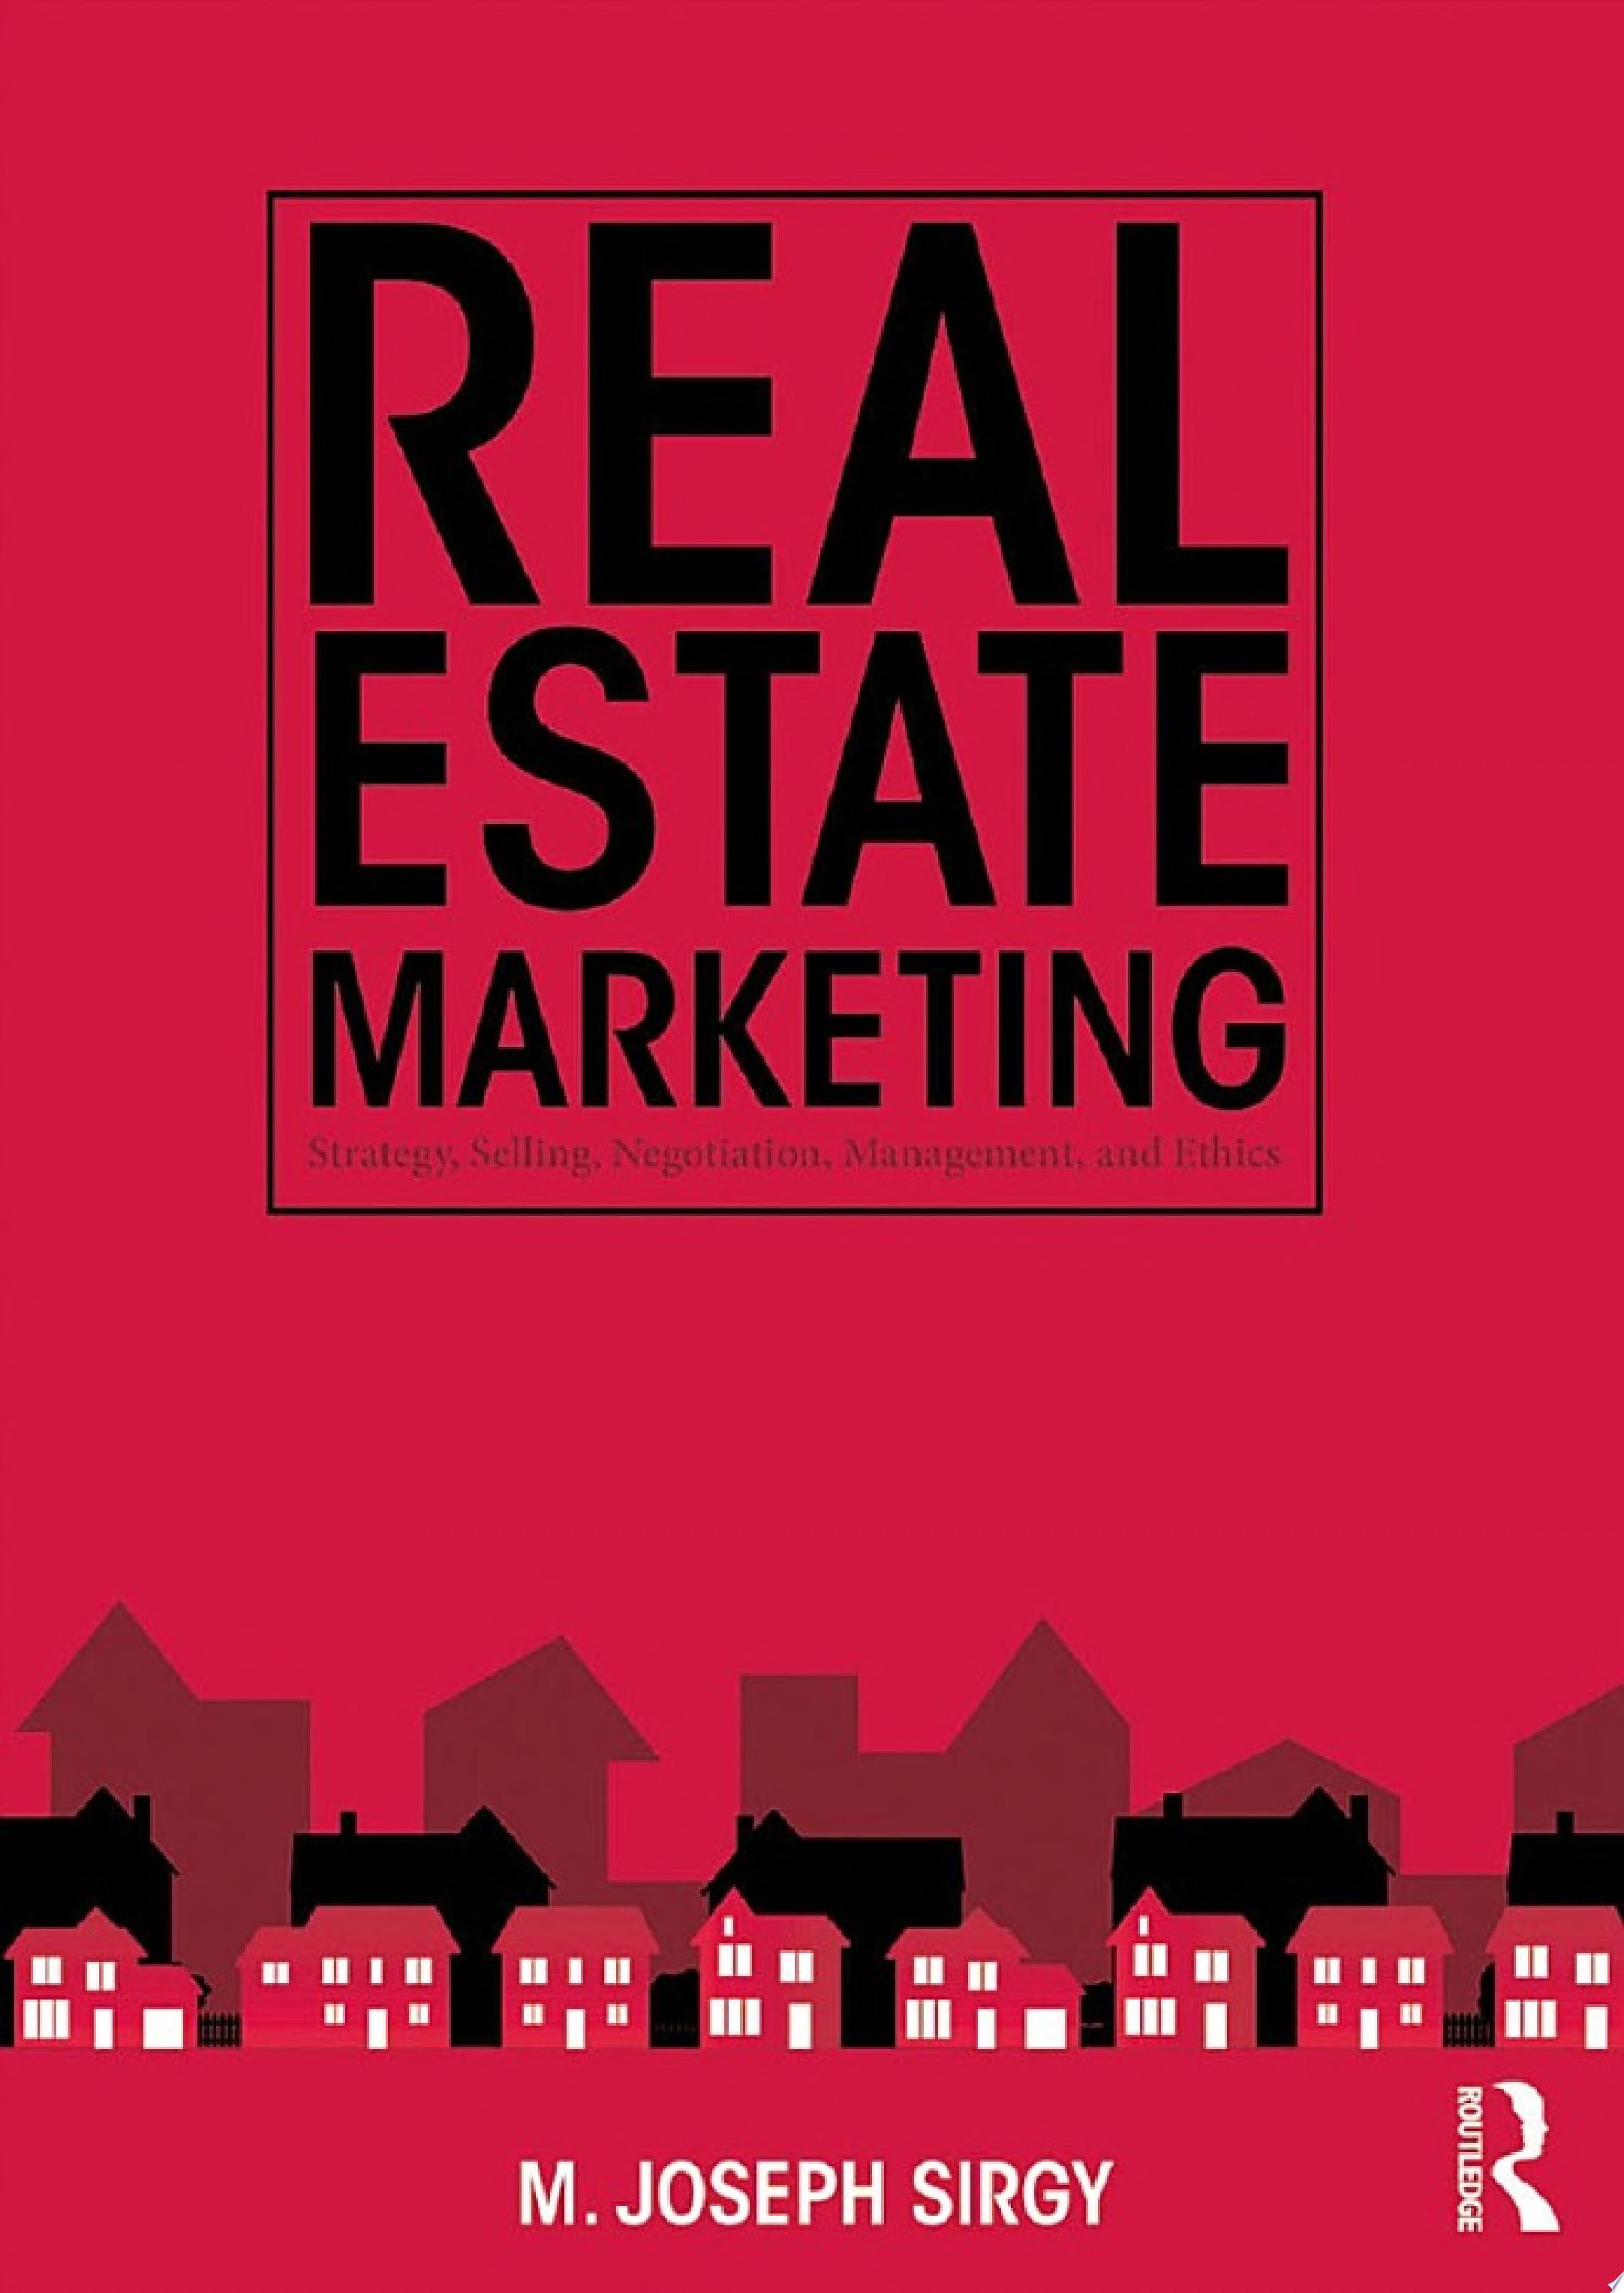 Real Estate Marketing